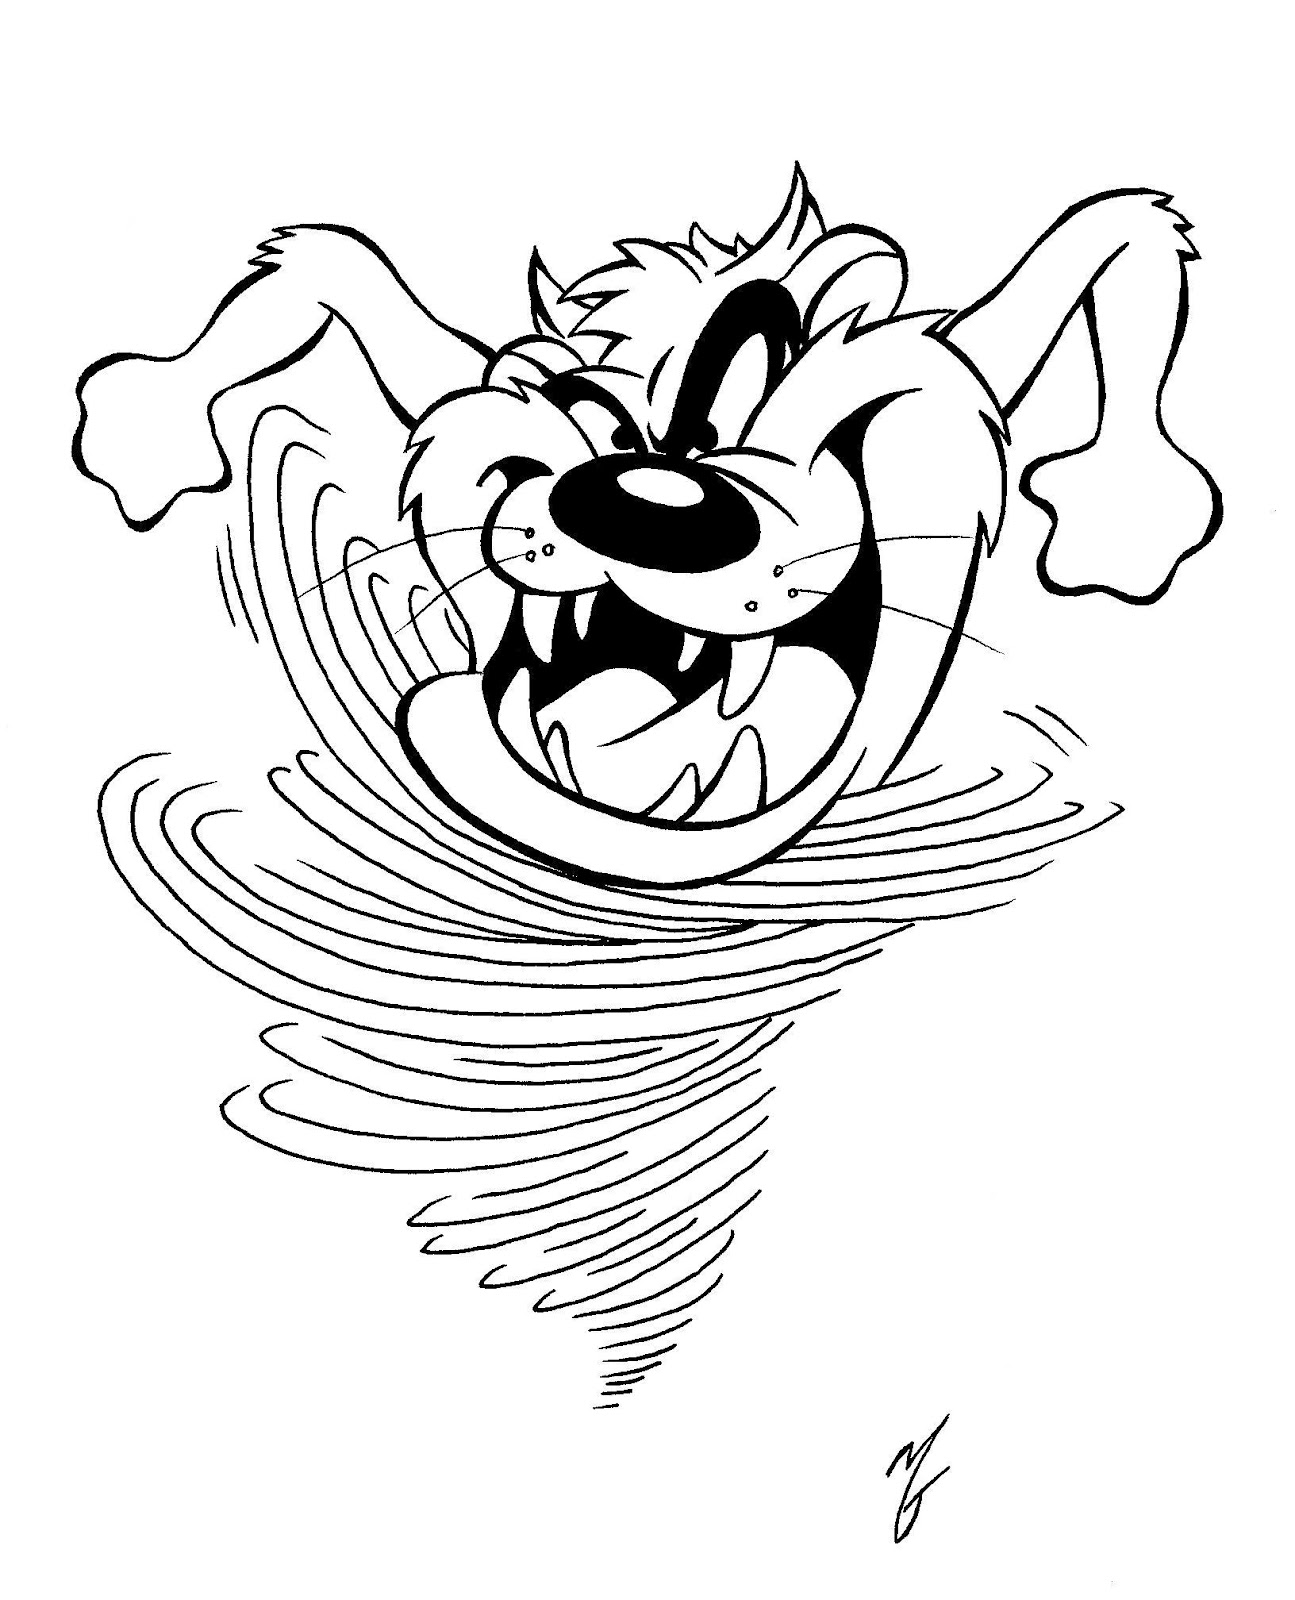 tasmanian devil drawing tasmanian devil cartoon drawing at getdrawings free download drawing tasmanian devil